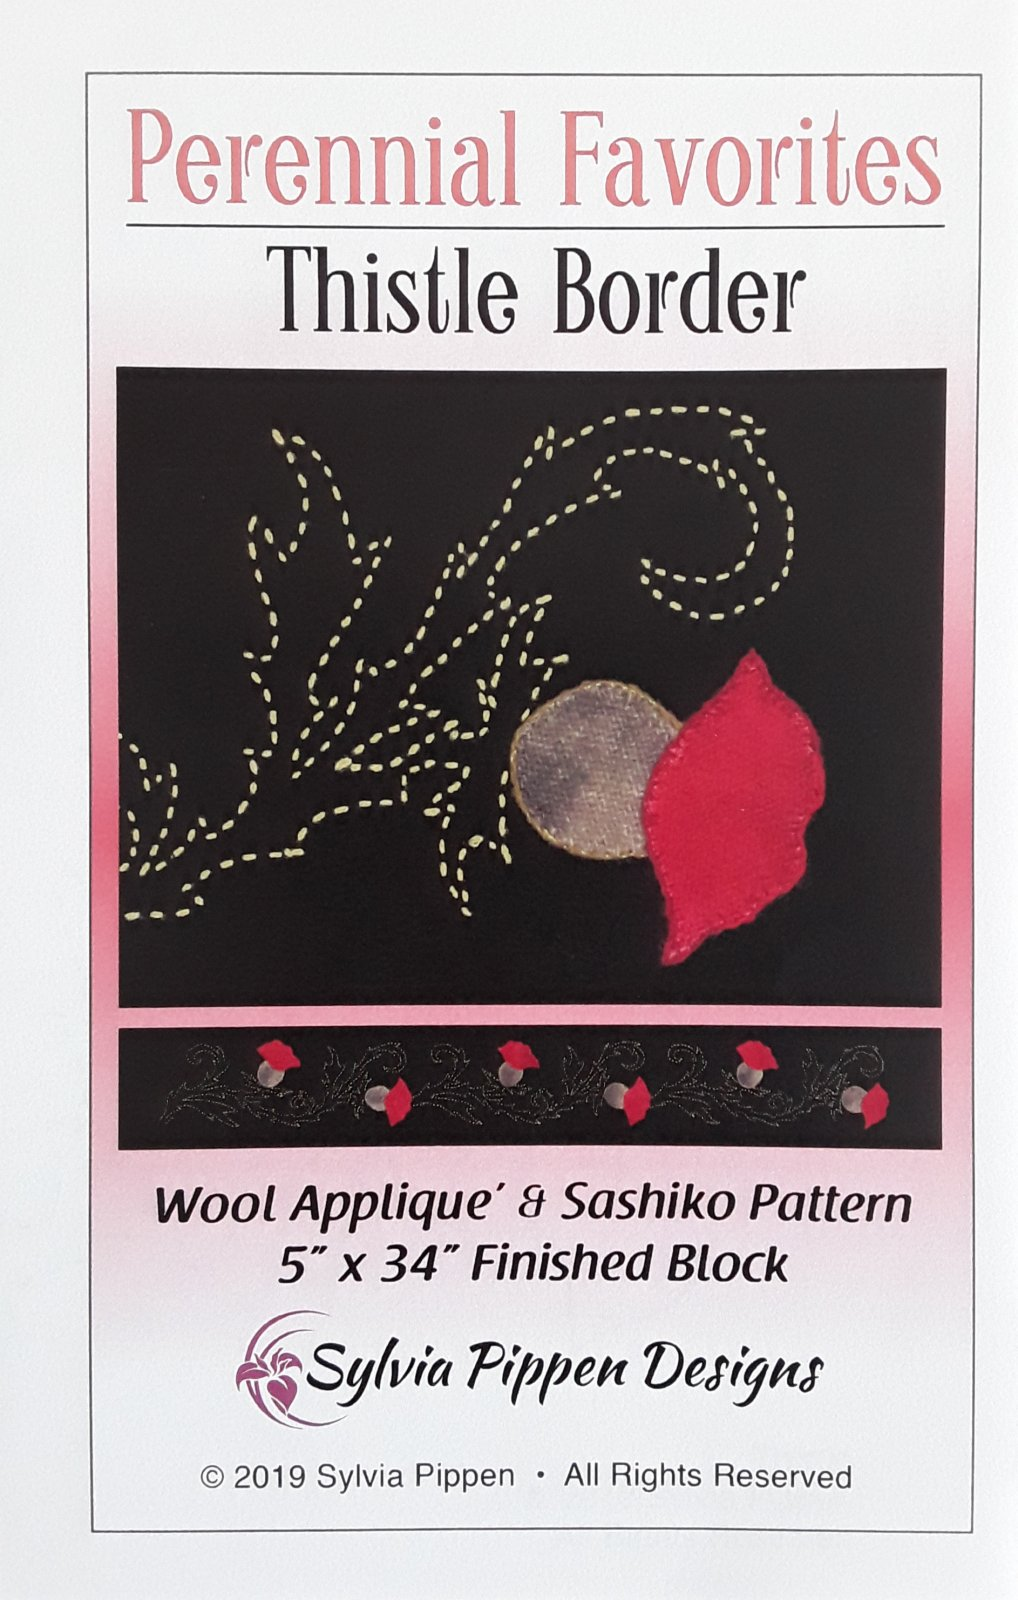 Perennial Favorites Thistle Border Wool Applique & Sashiko Pattern